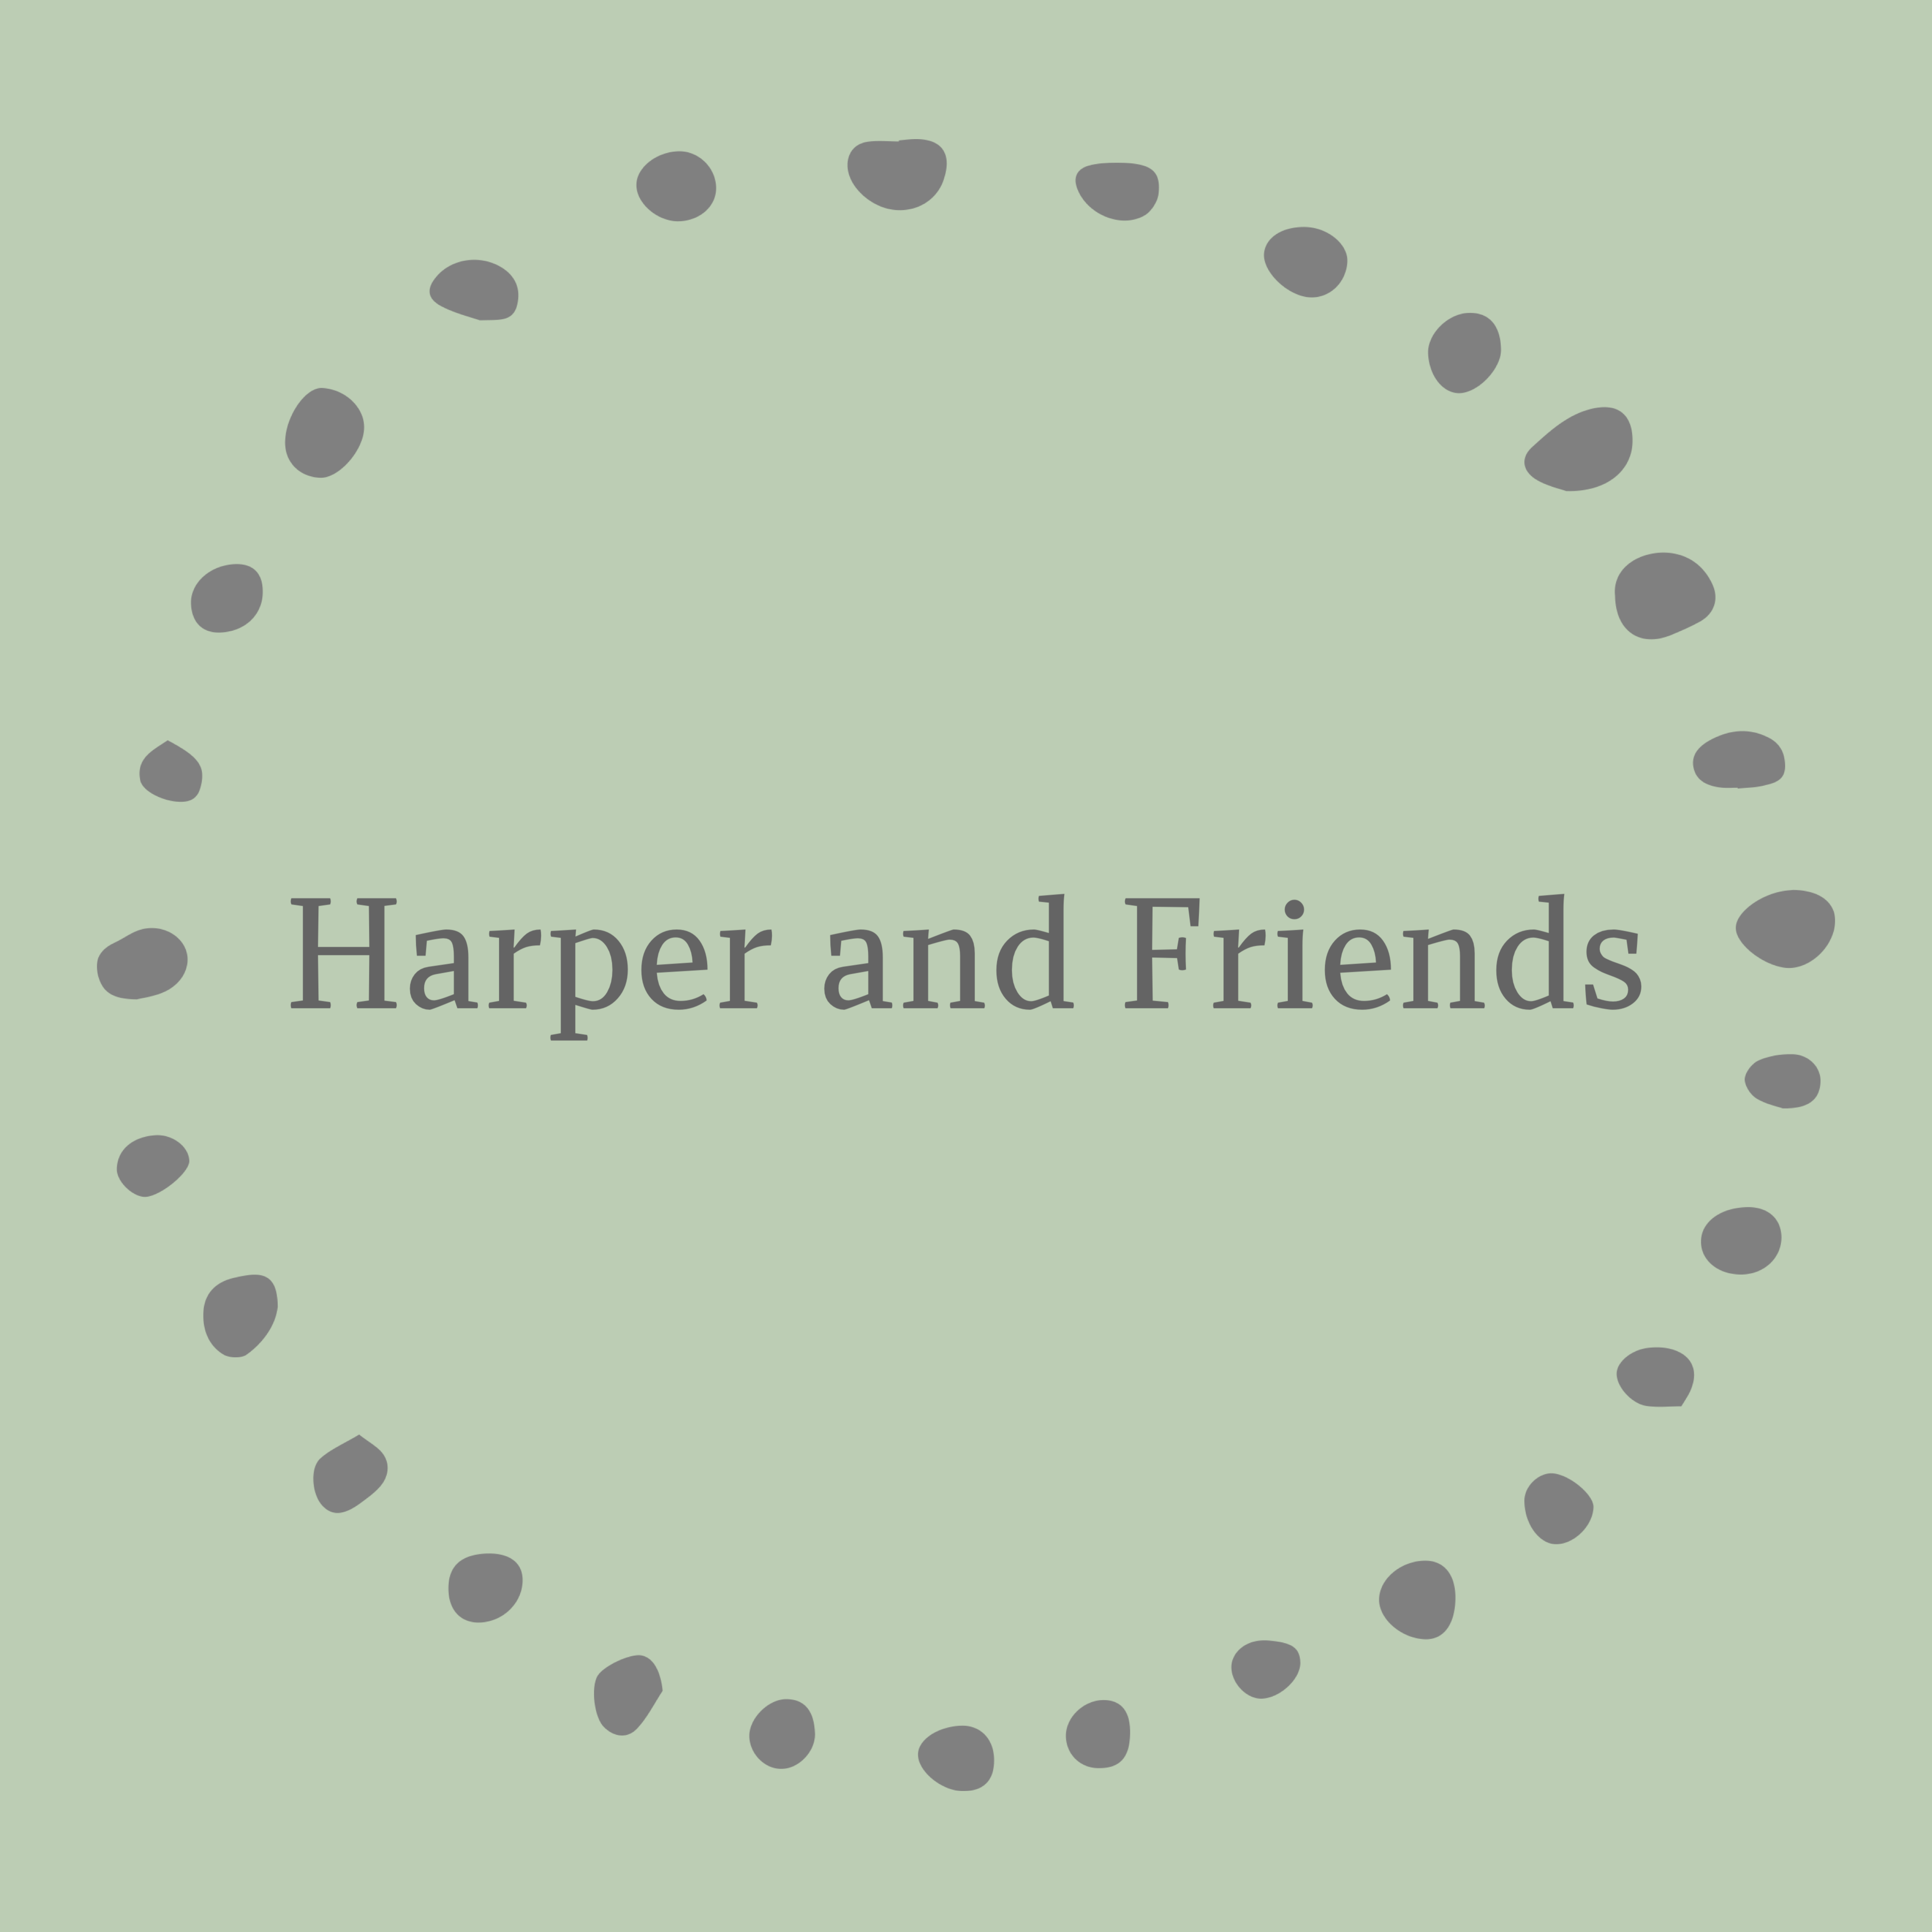 Harper and Friends